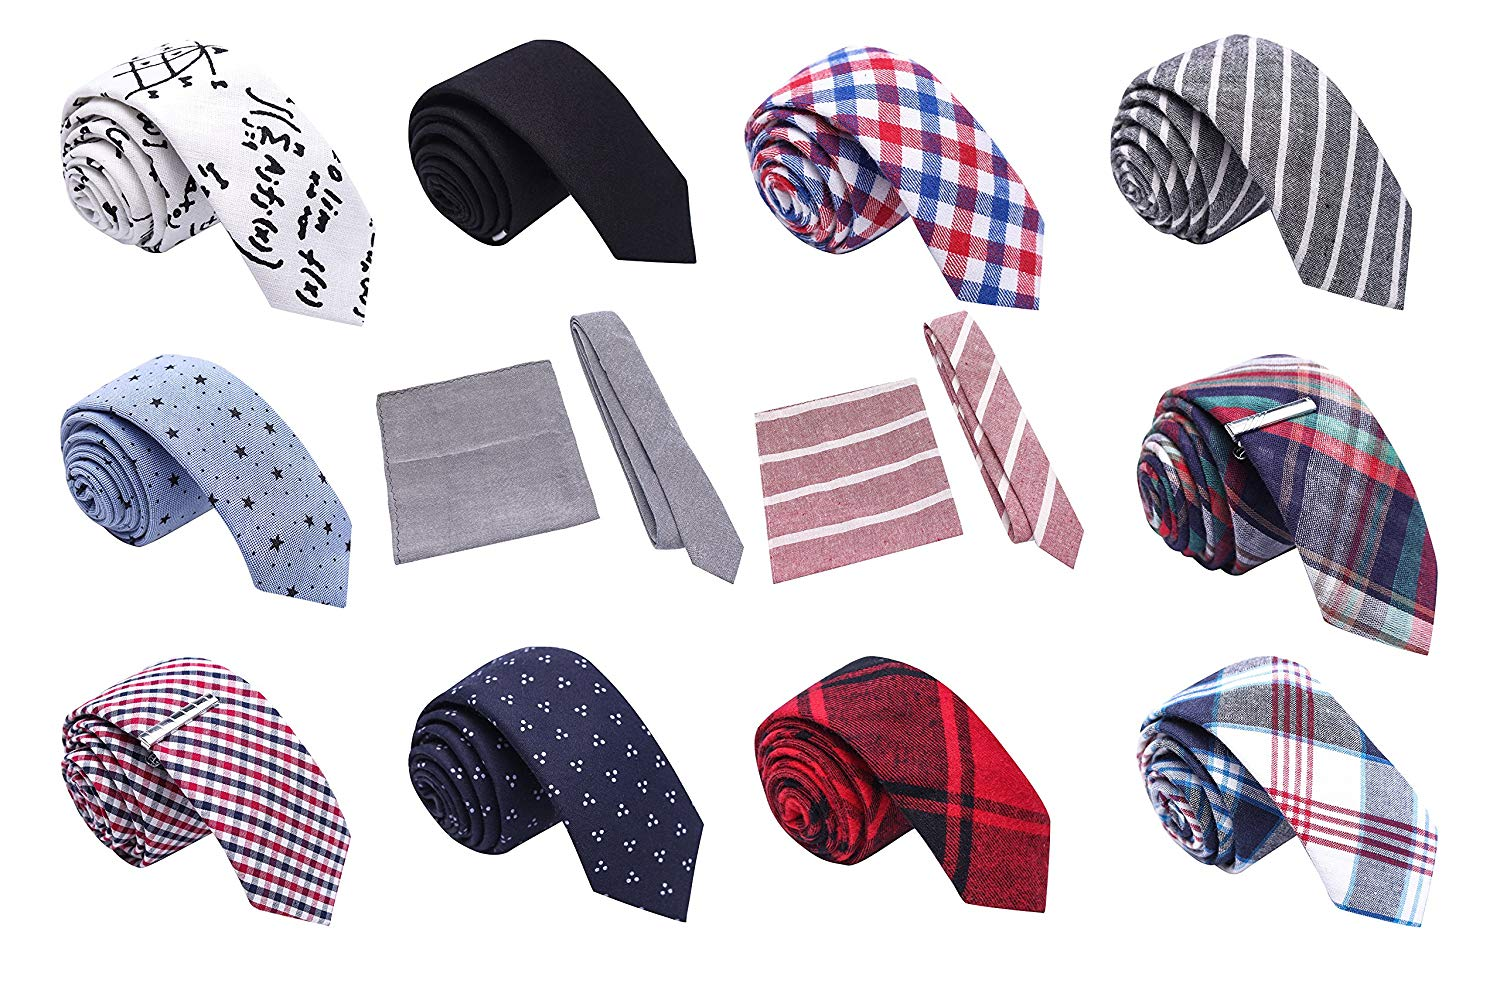 5693f636b2c8 Get Quotations · Skinny Tie Madness Colorful Essentials Bundle of 12, 2